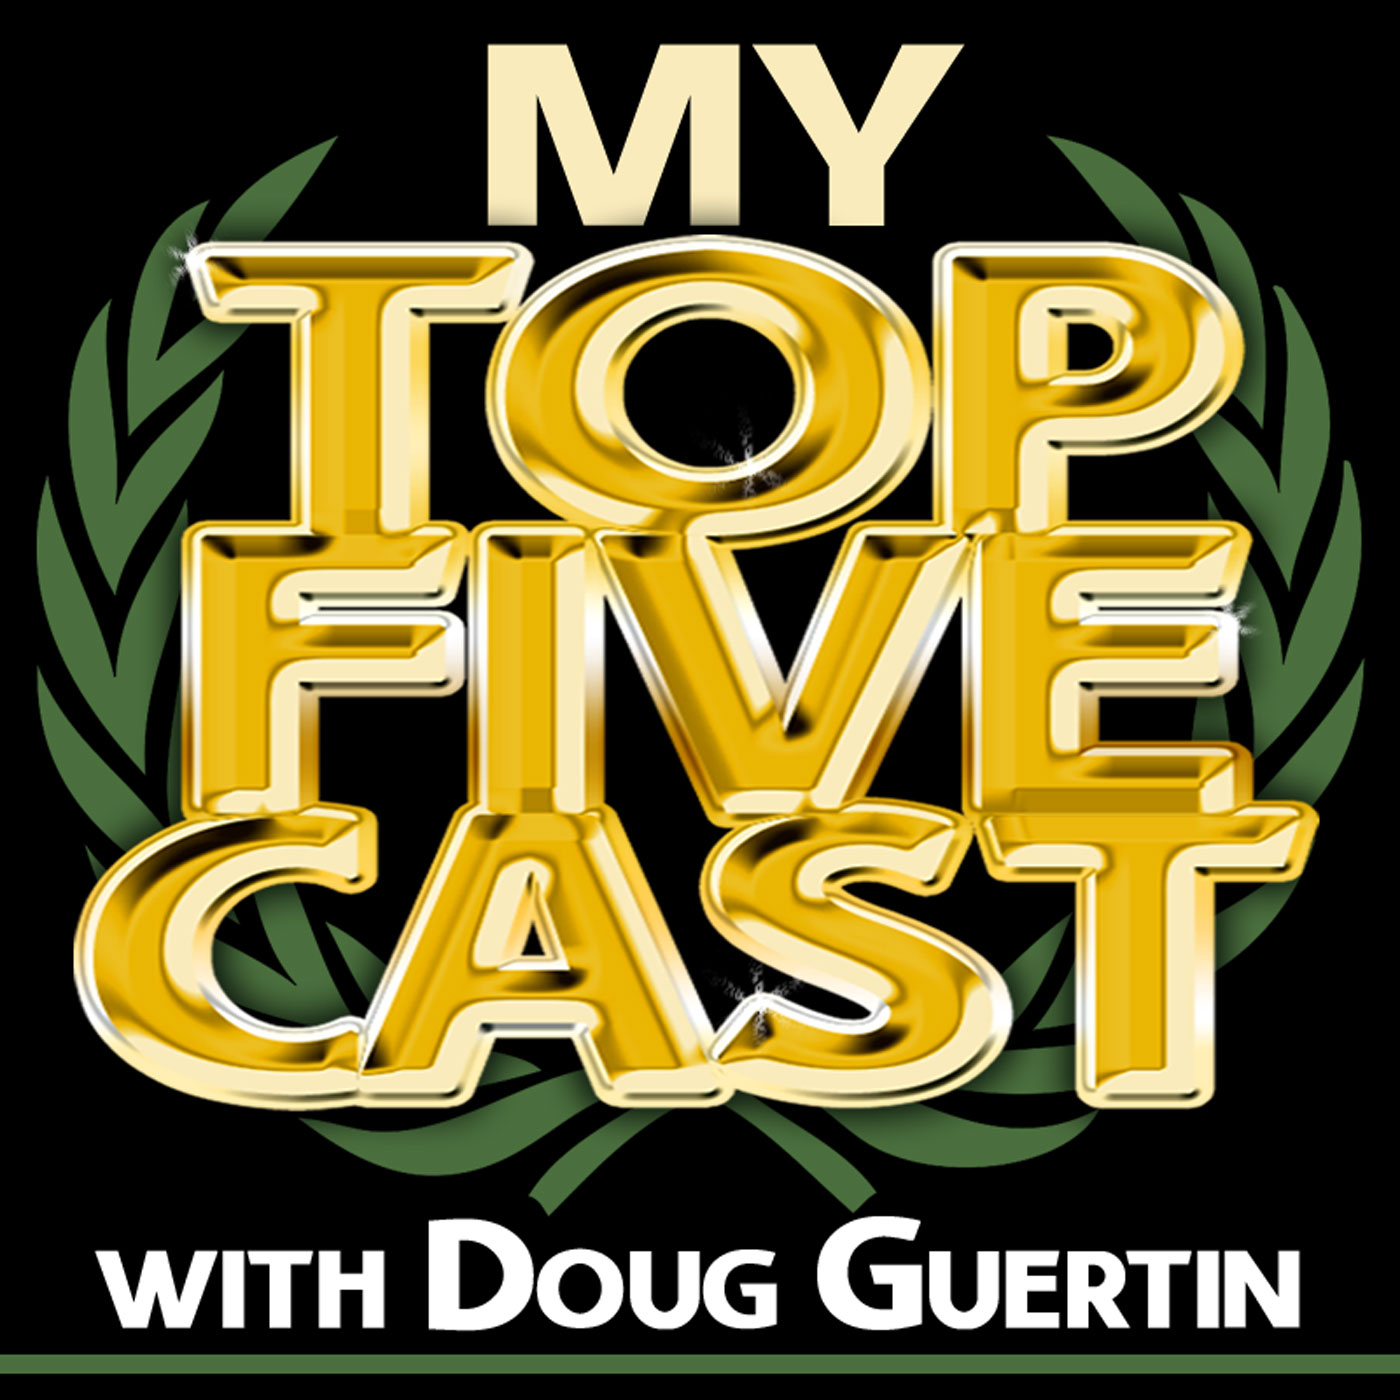 My Top Fivecast - Doug Guertin